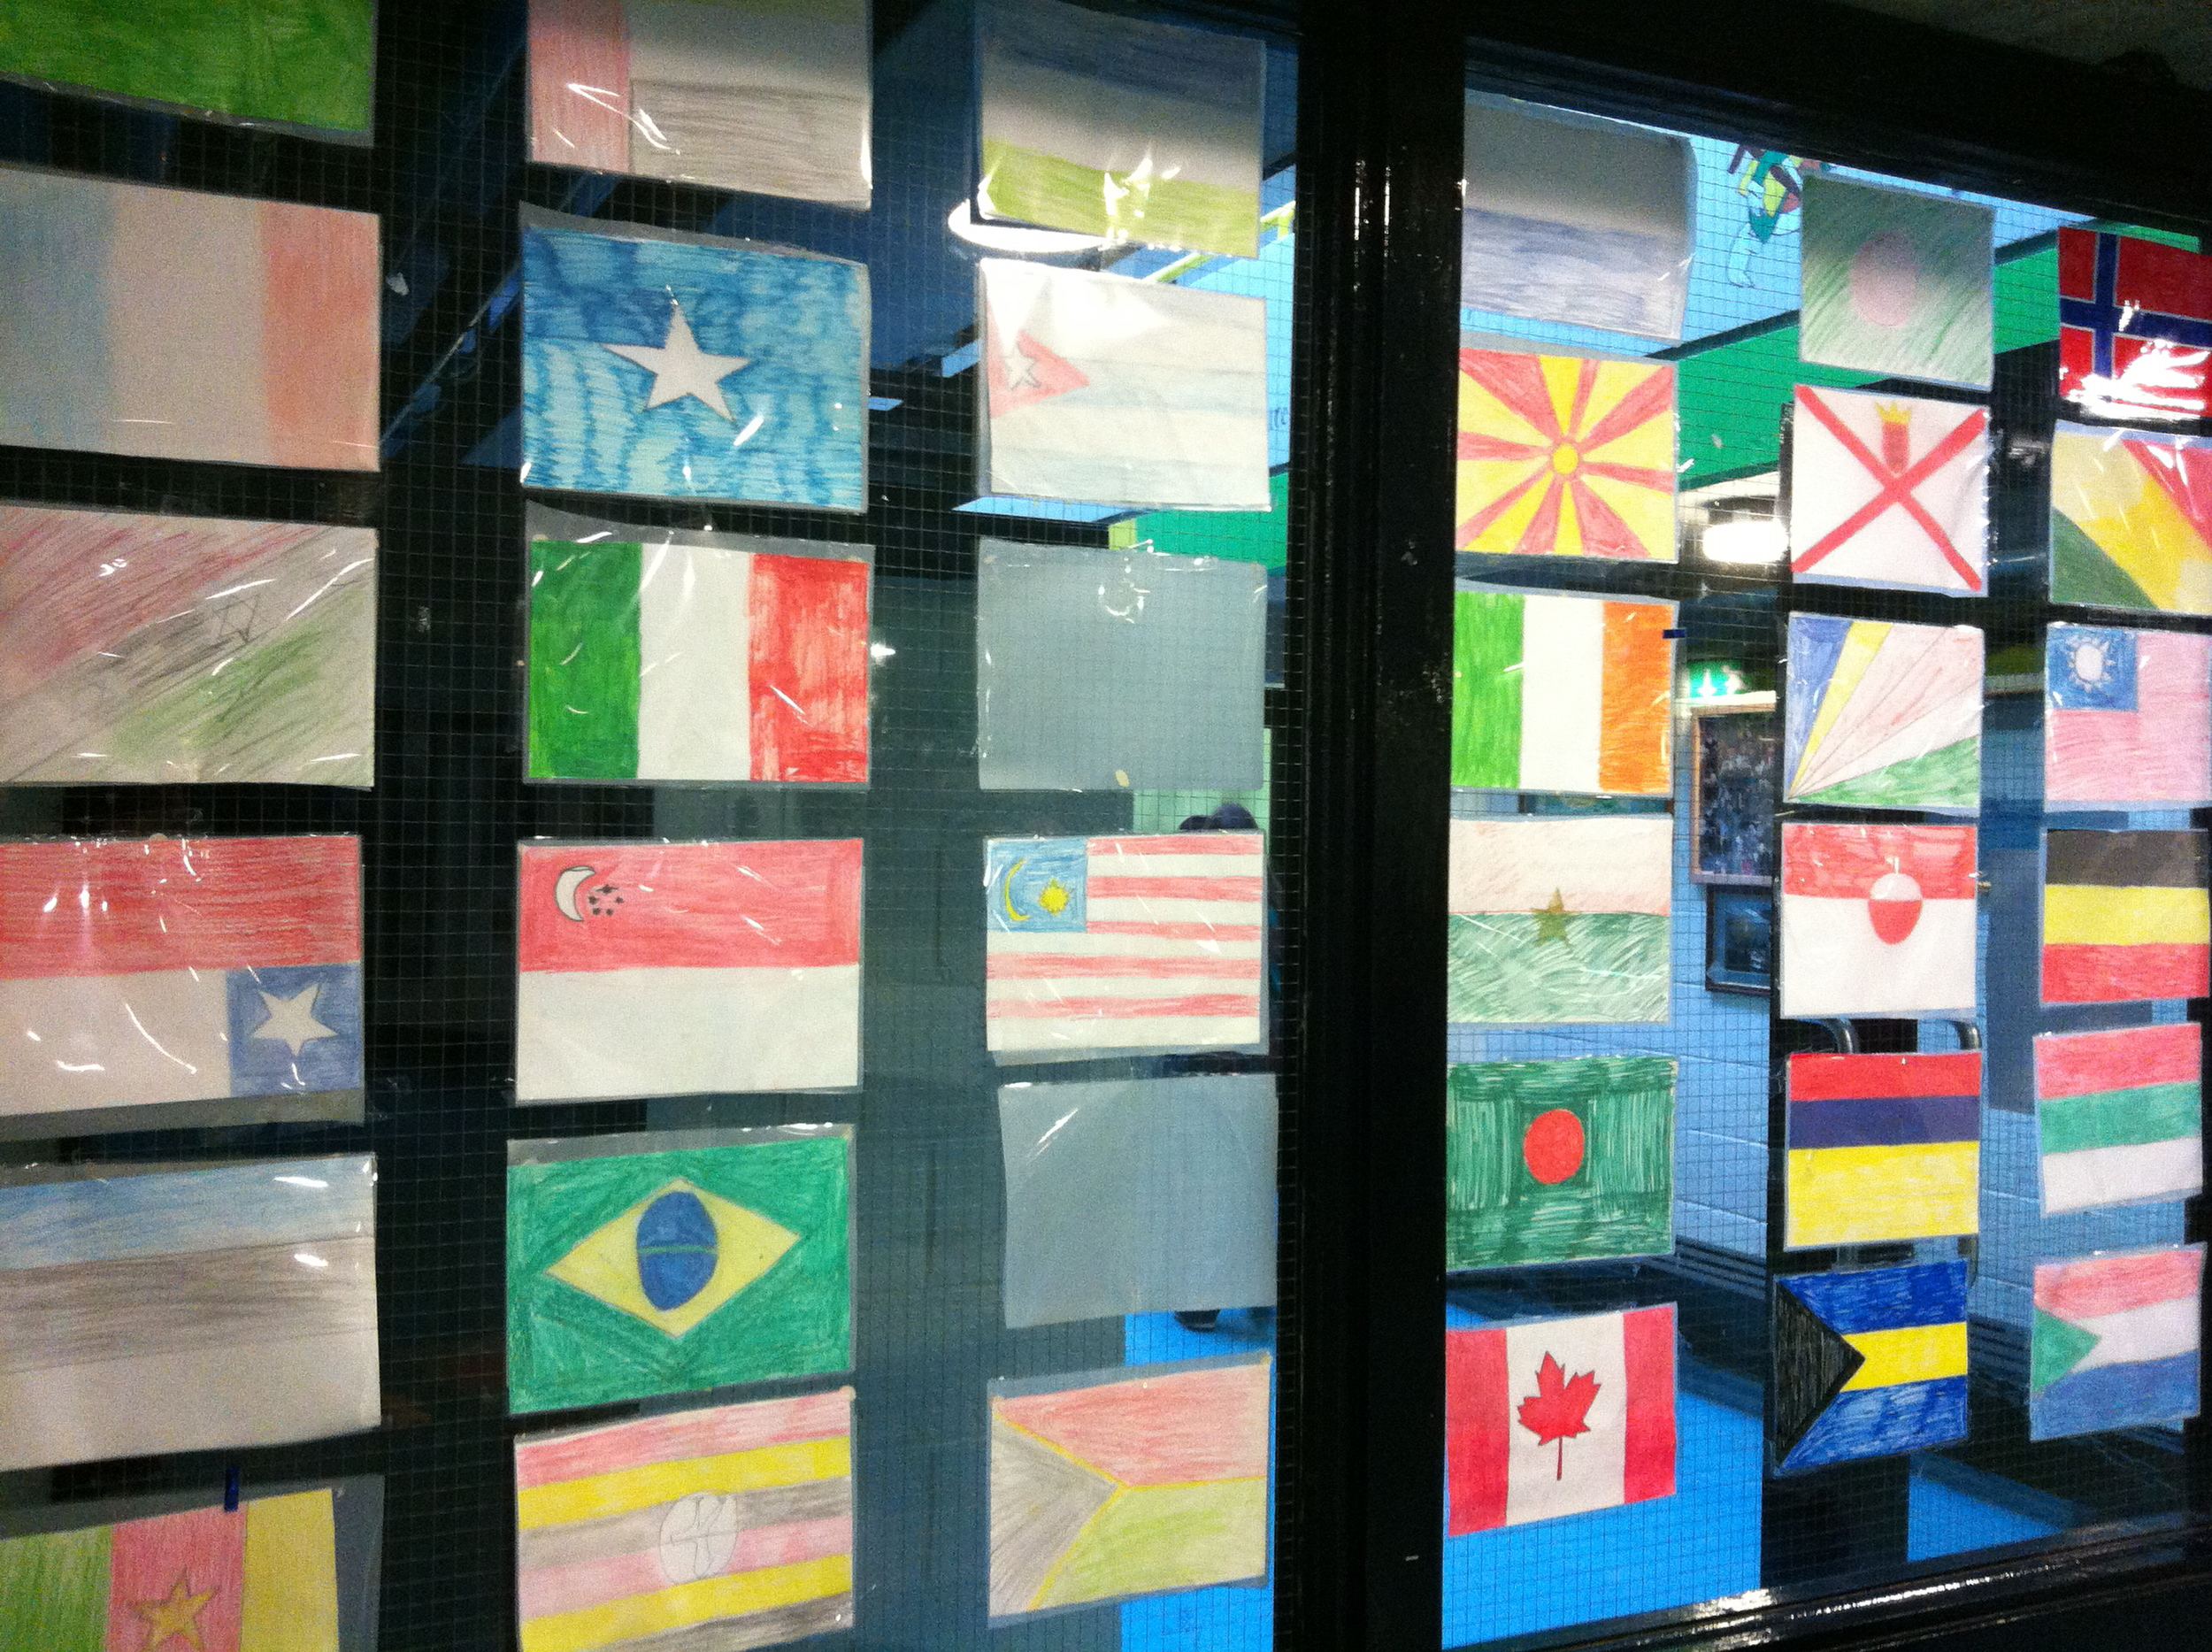 Just some of the international flags in our school foyer